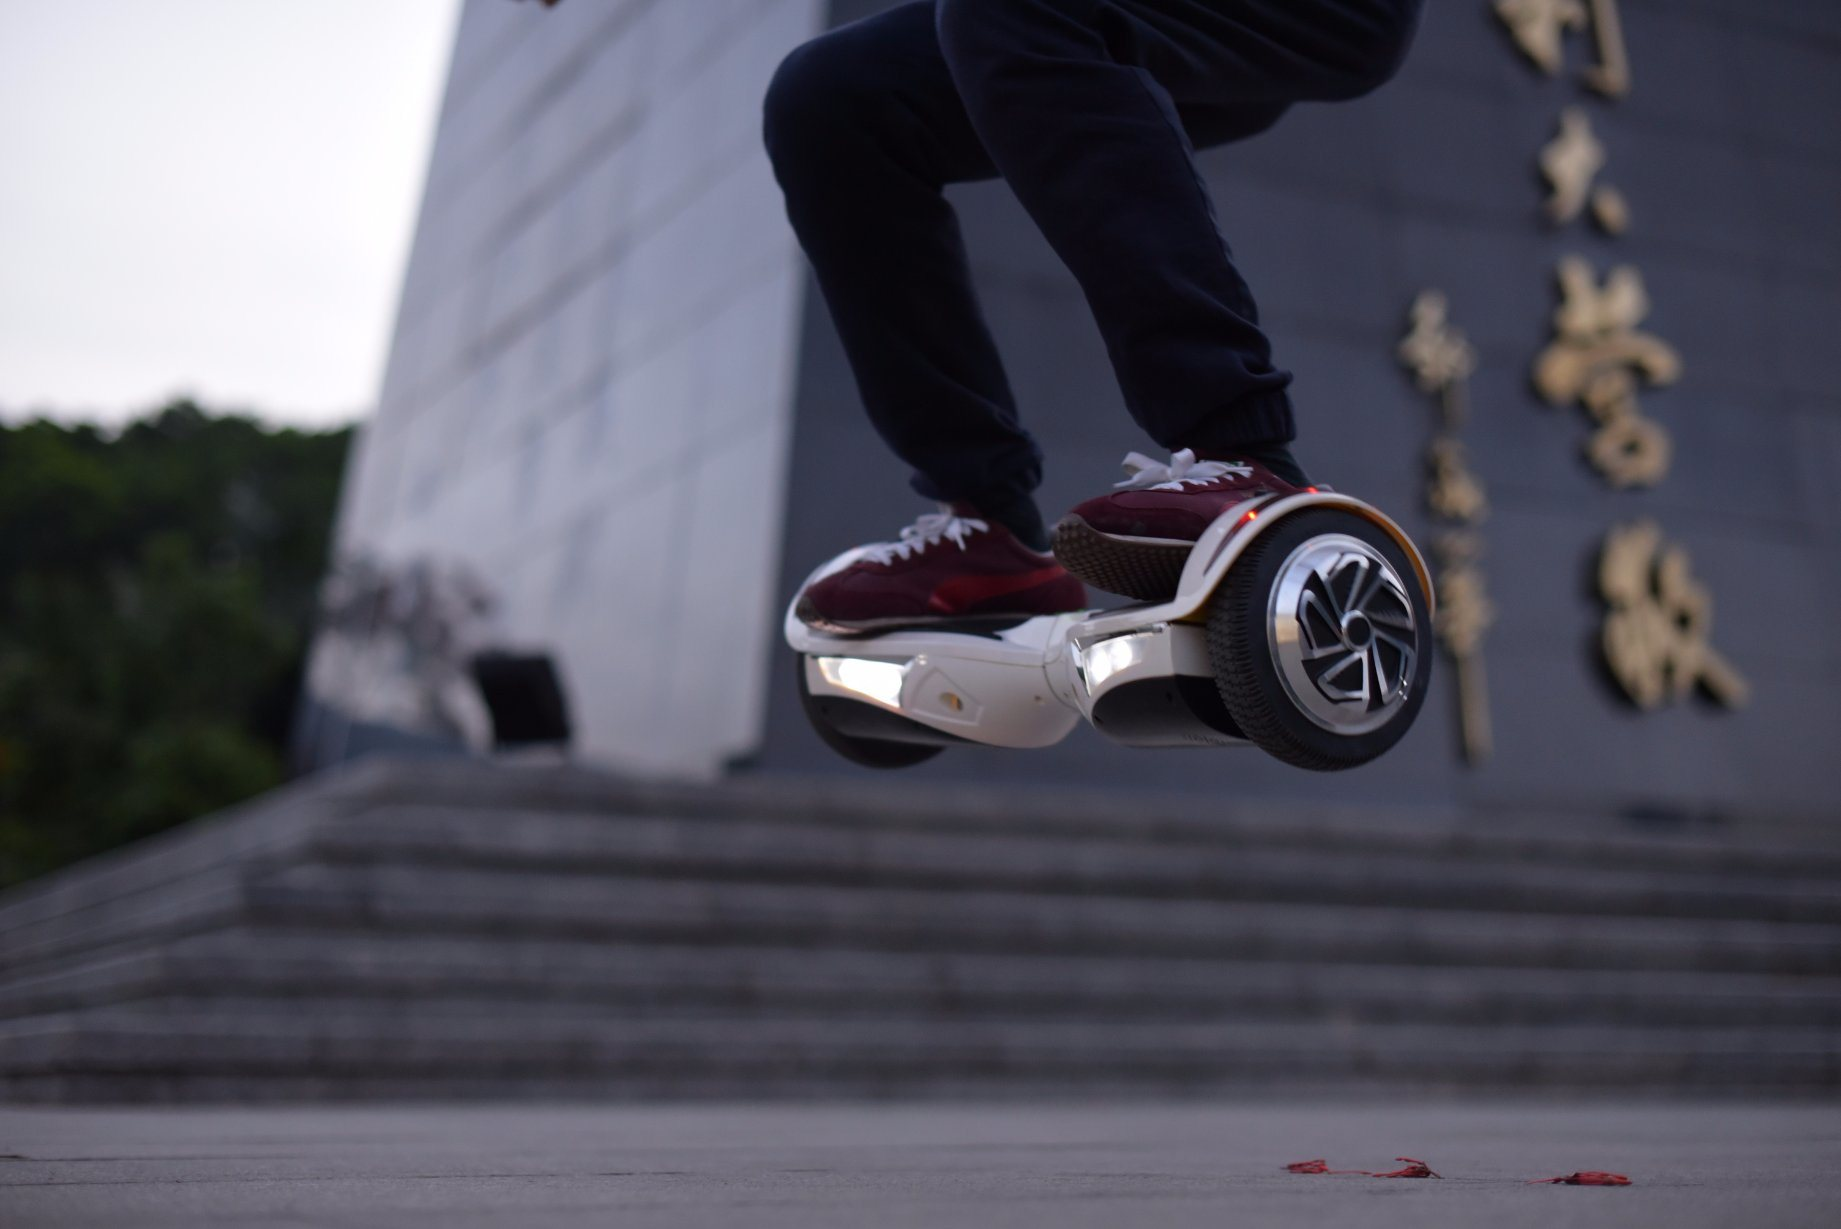 2017-Smartmey-Patent-Holder-Best-Selling-Hoverboard-Jumpable-Hoverboard-Jumping-Hoverboard-Electric-Self-Balancing-Scooter